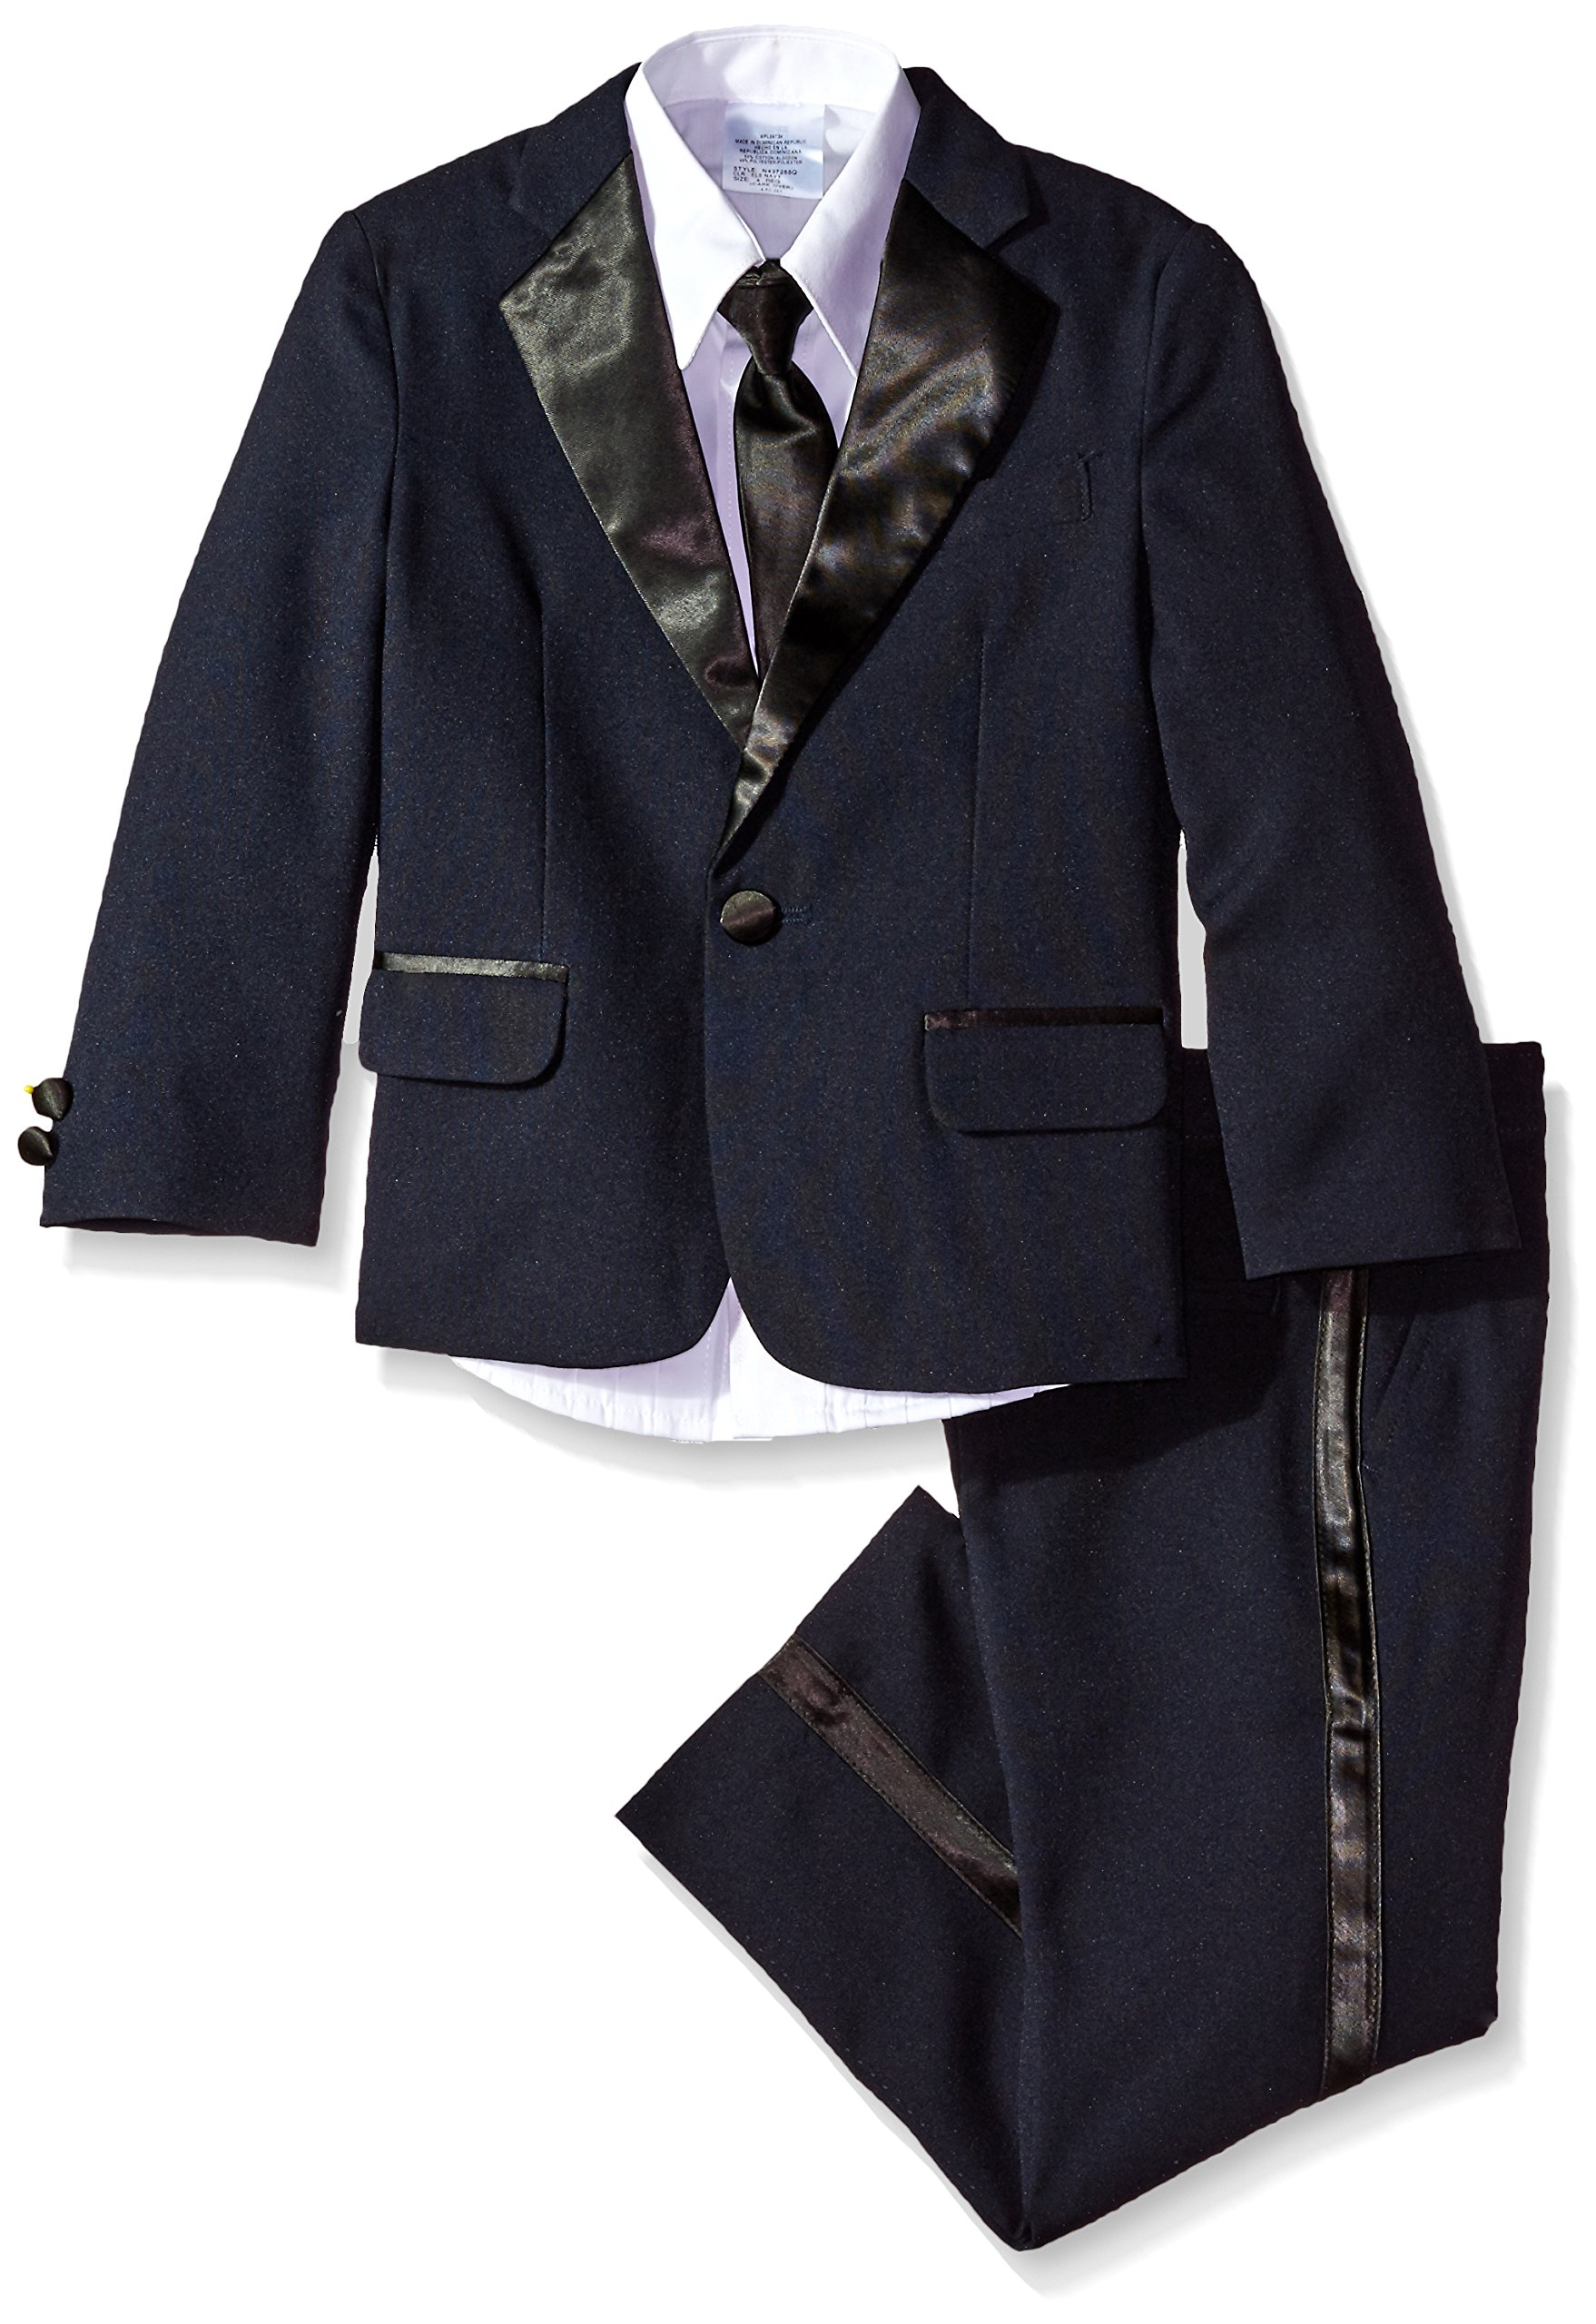 Nautica Boy's Little Tuxedo Set with Jacket, Pant, Shirt, and Bow Tie, Navy, 5